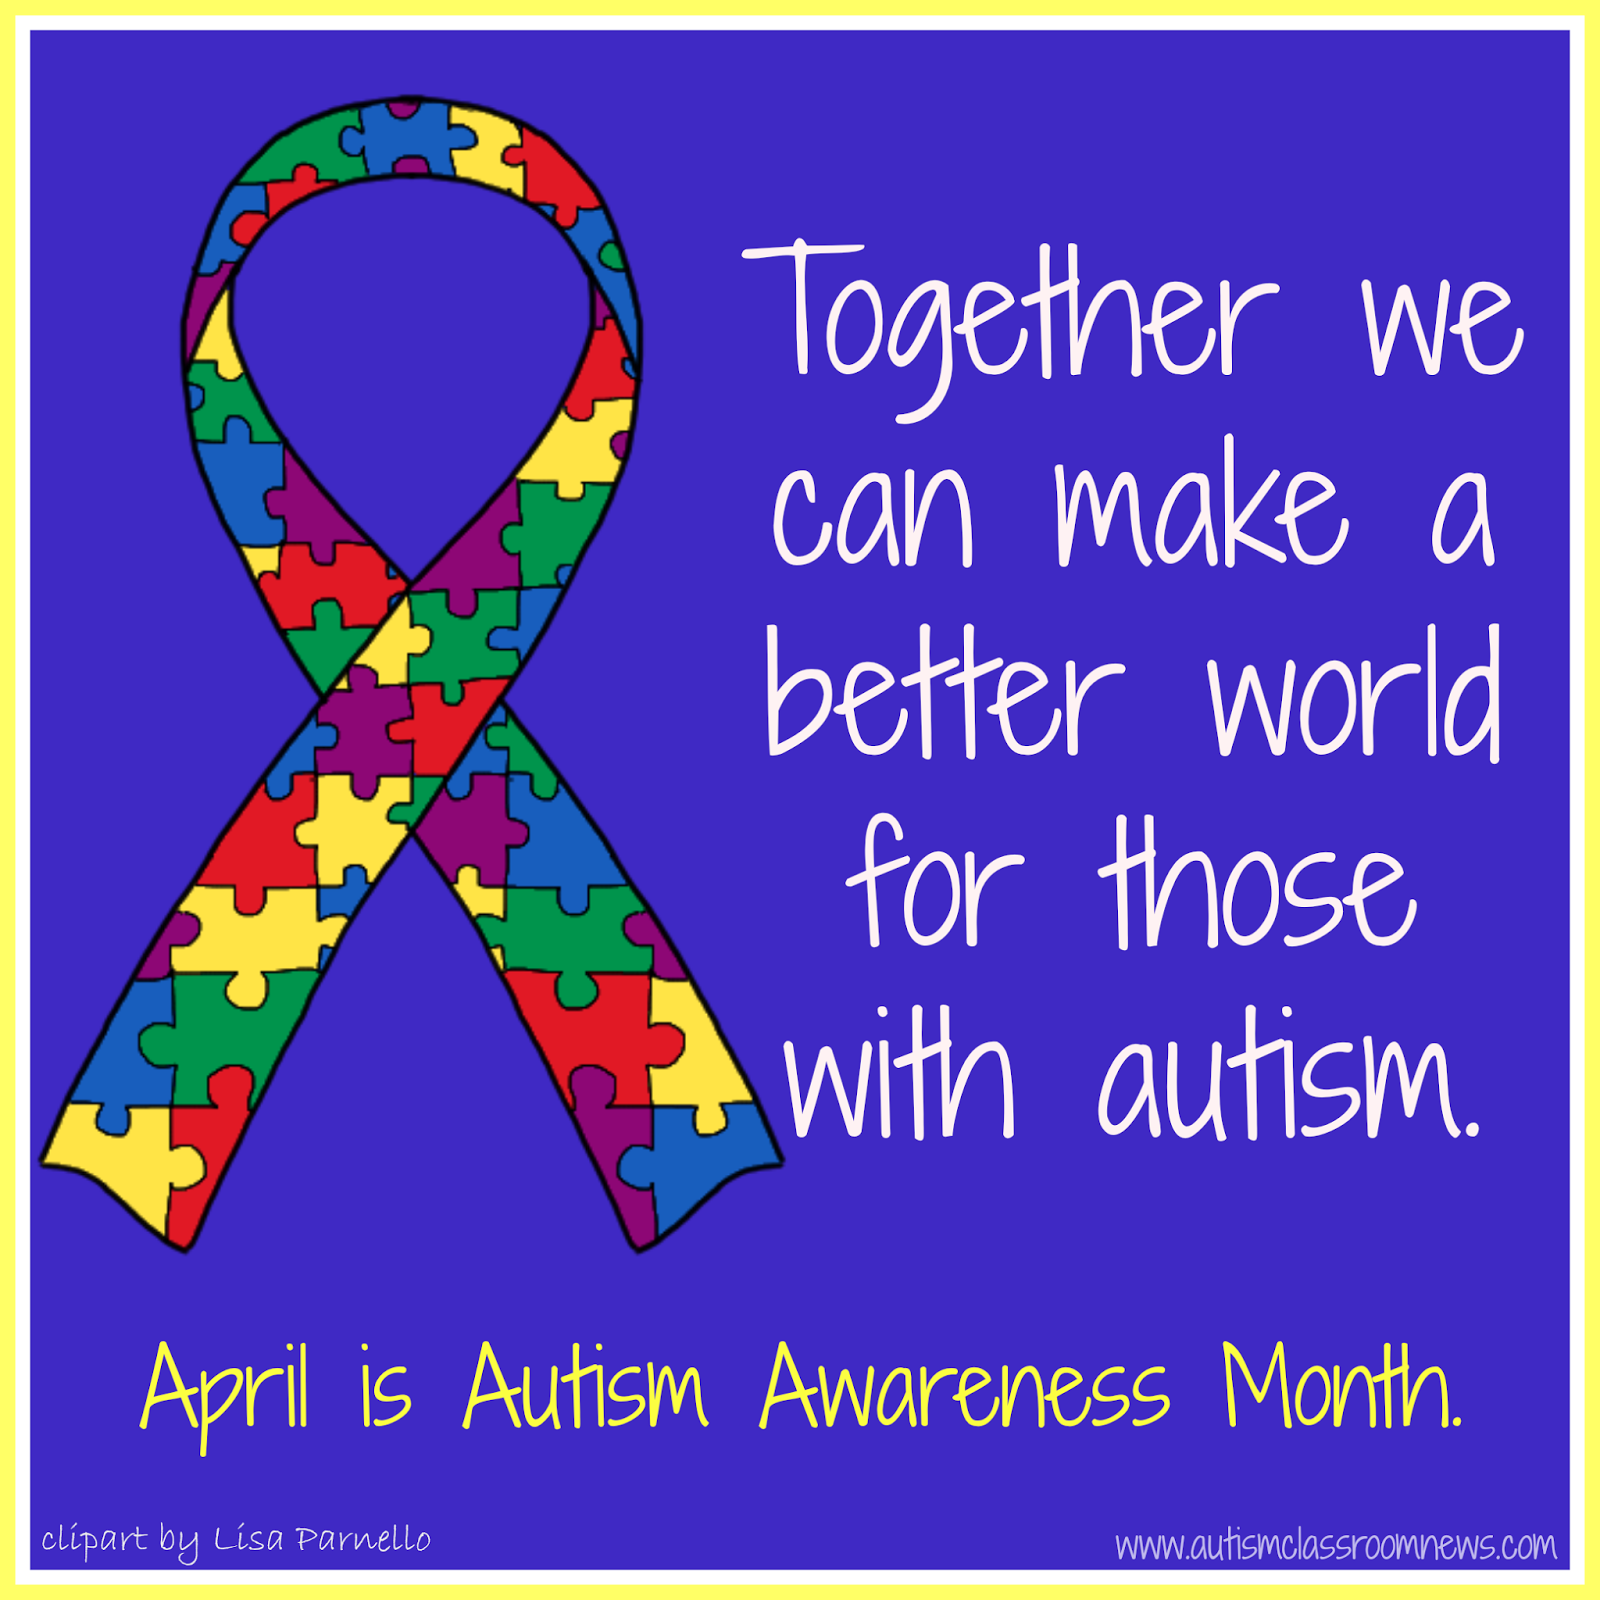 April is autism awareness month clip art image royalty free 17 Best images about autism on Pinterest | Iron man, Autism ... image royalty free